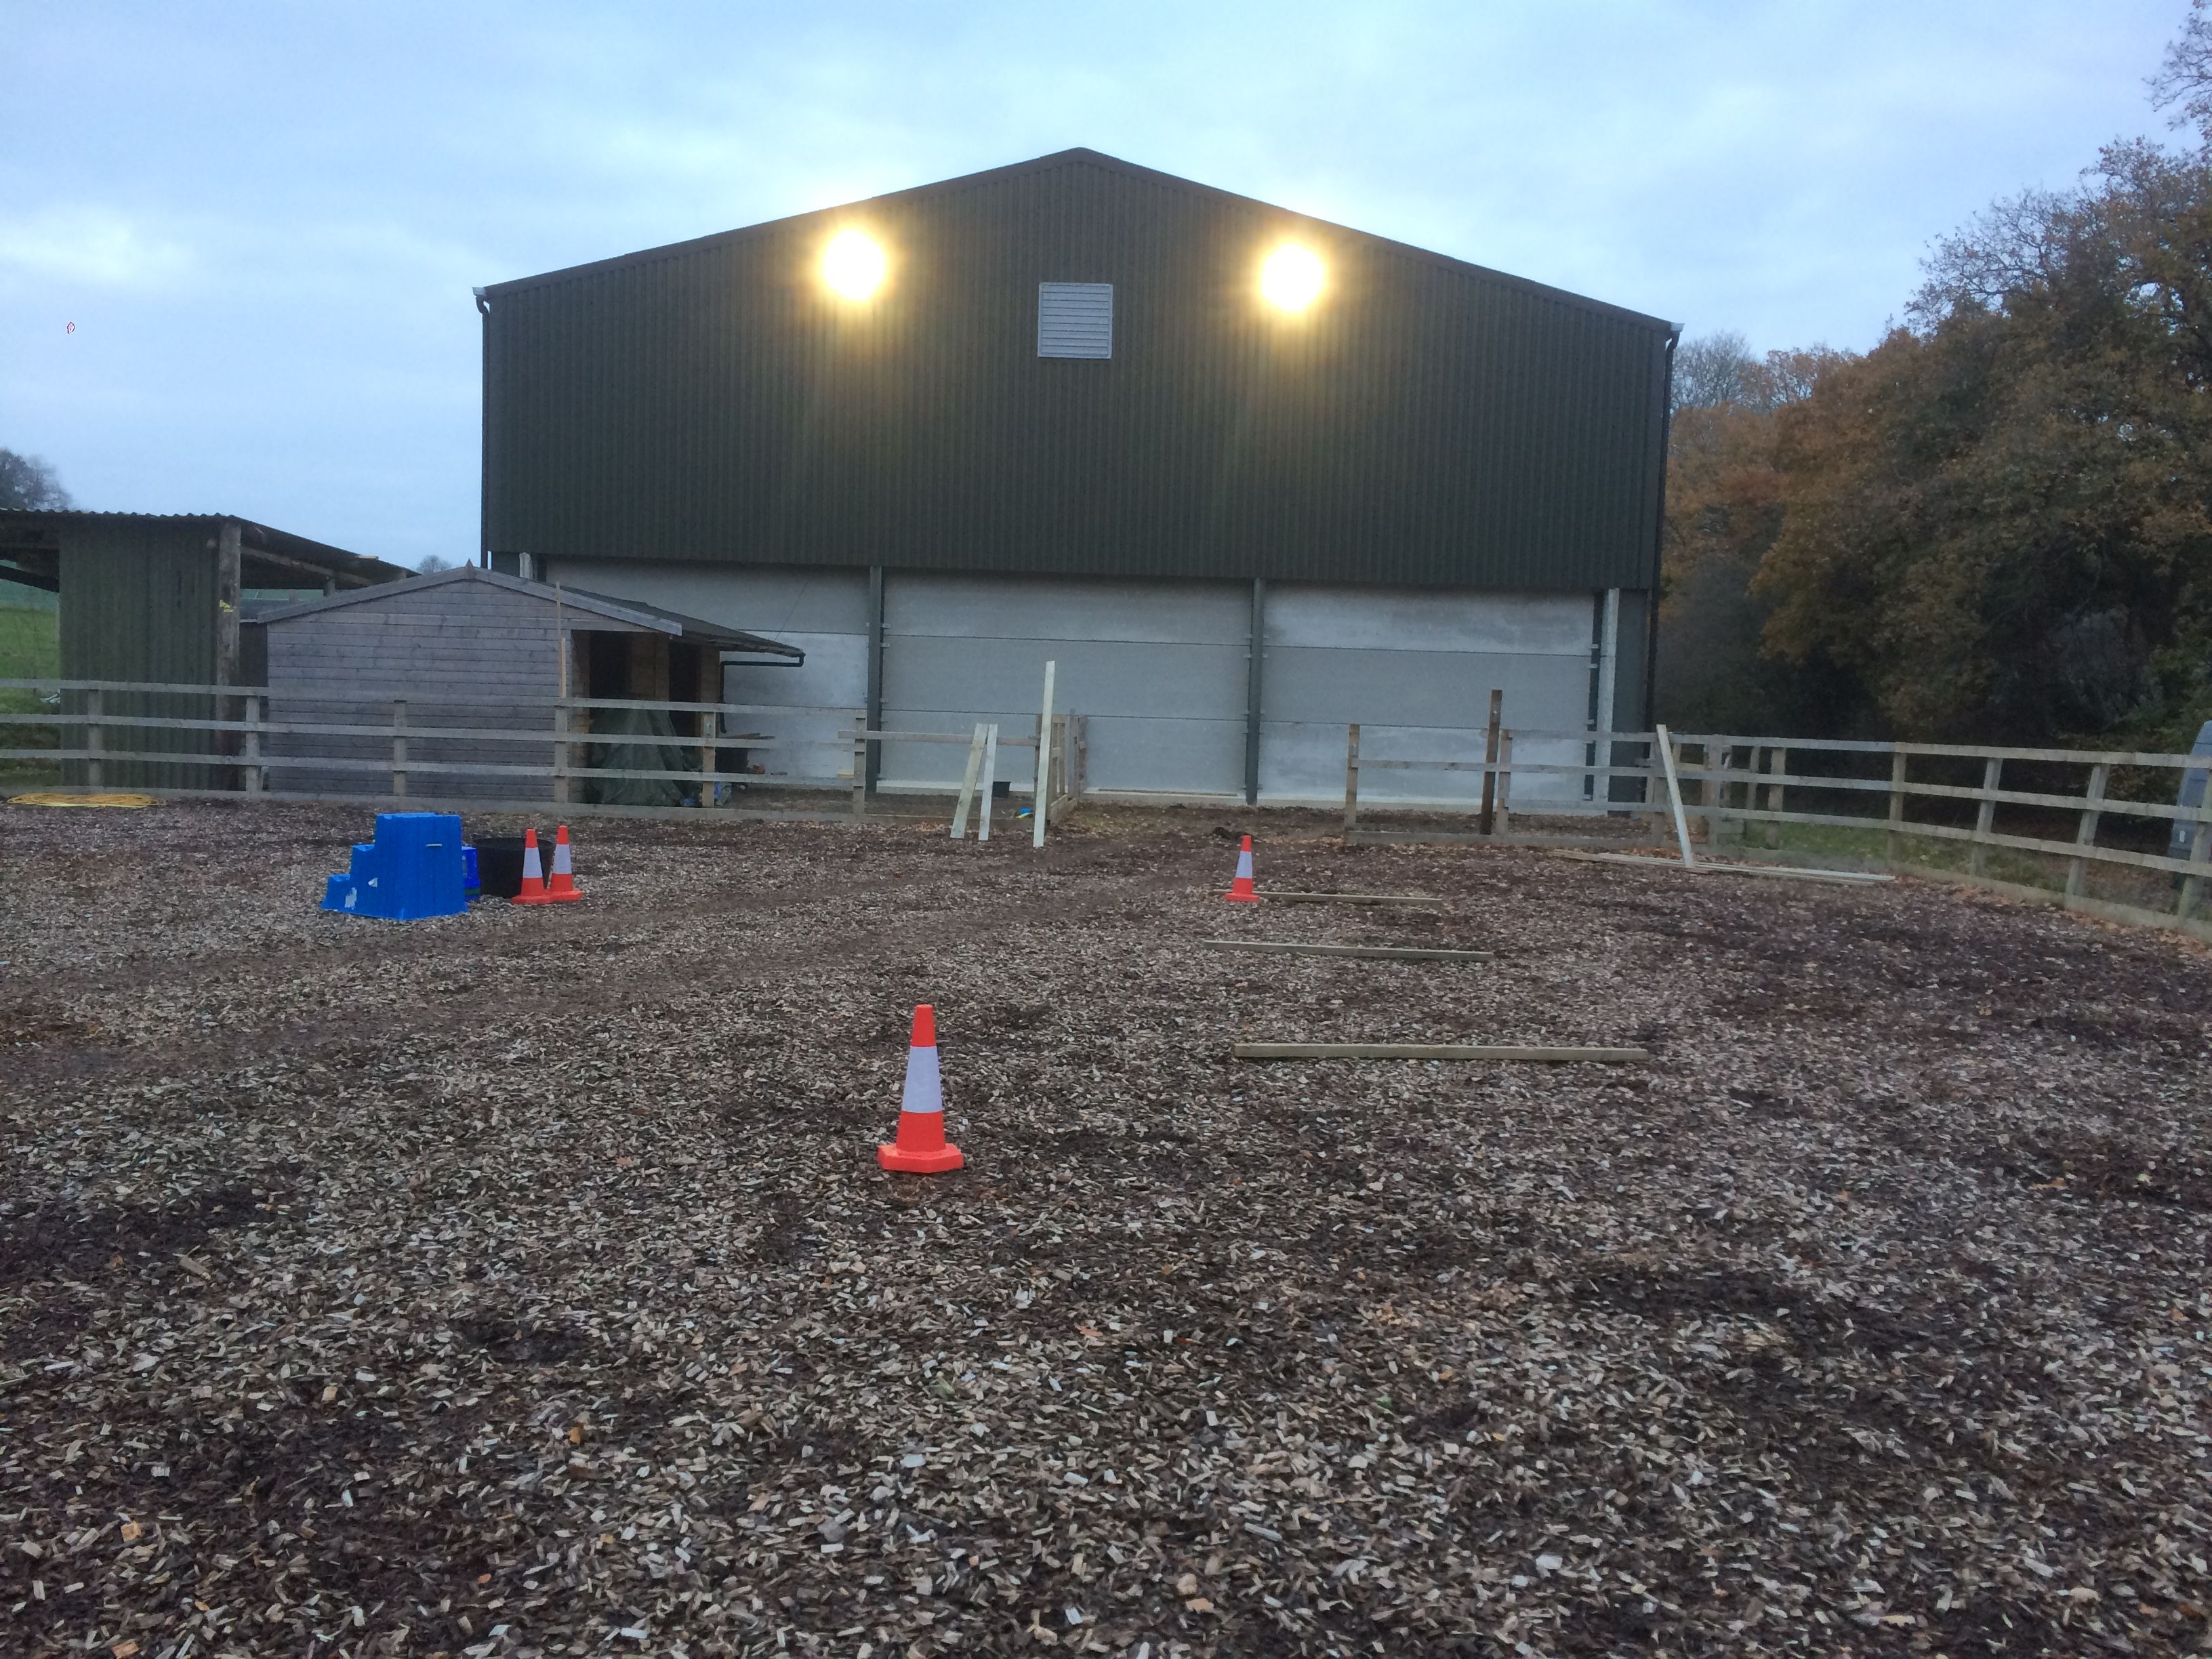 LED Floodlighting installed on a Barn to Illuminate a Horse Riding Arena